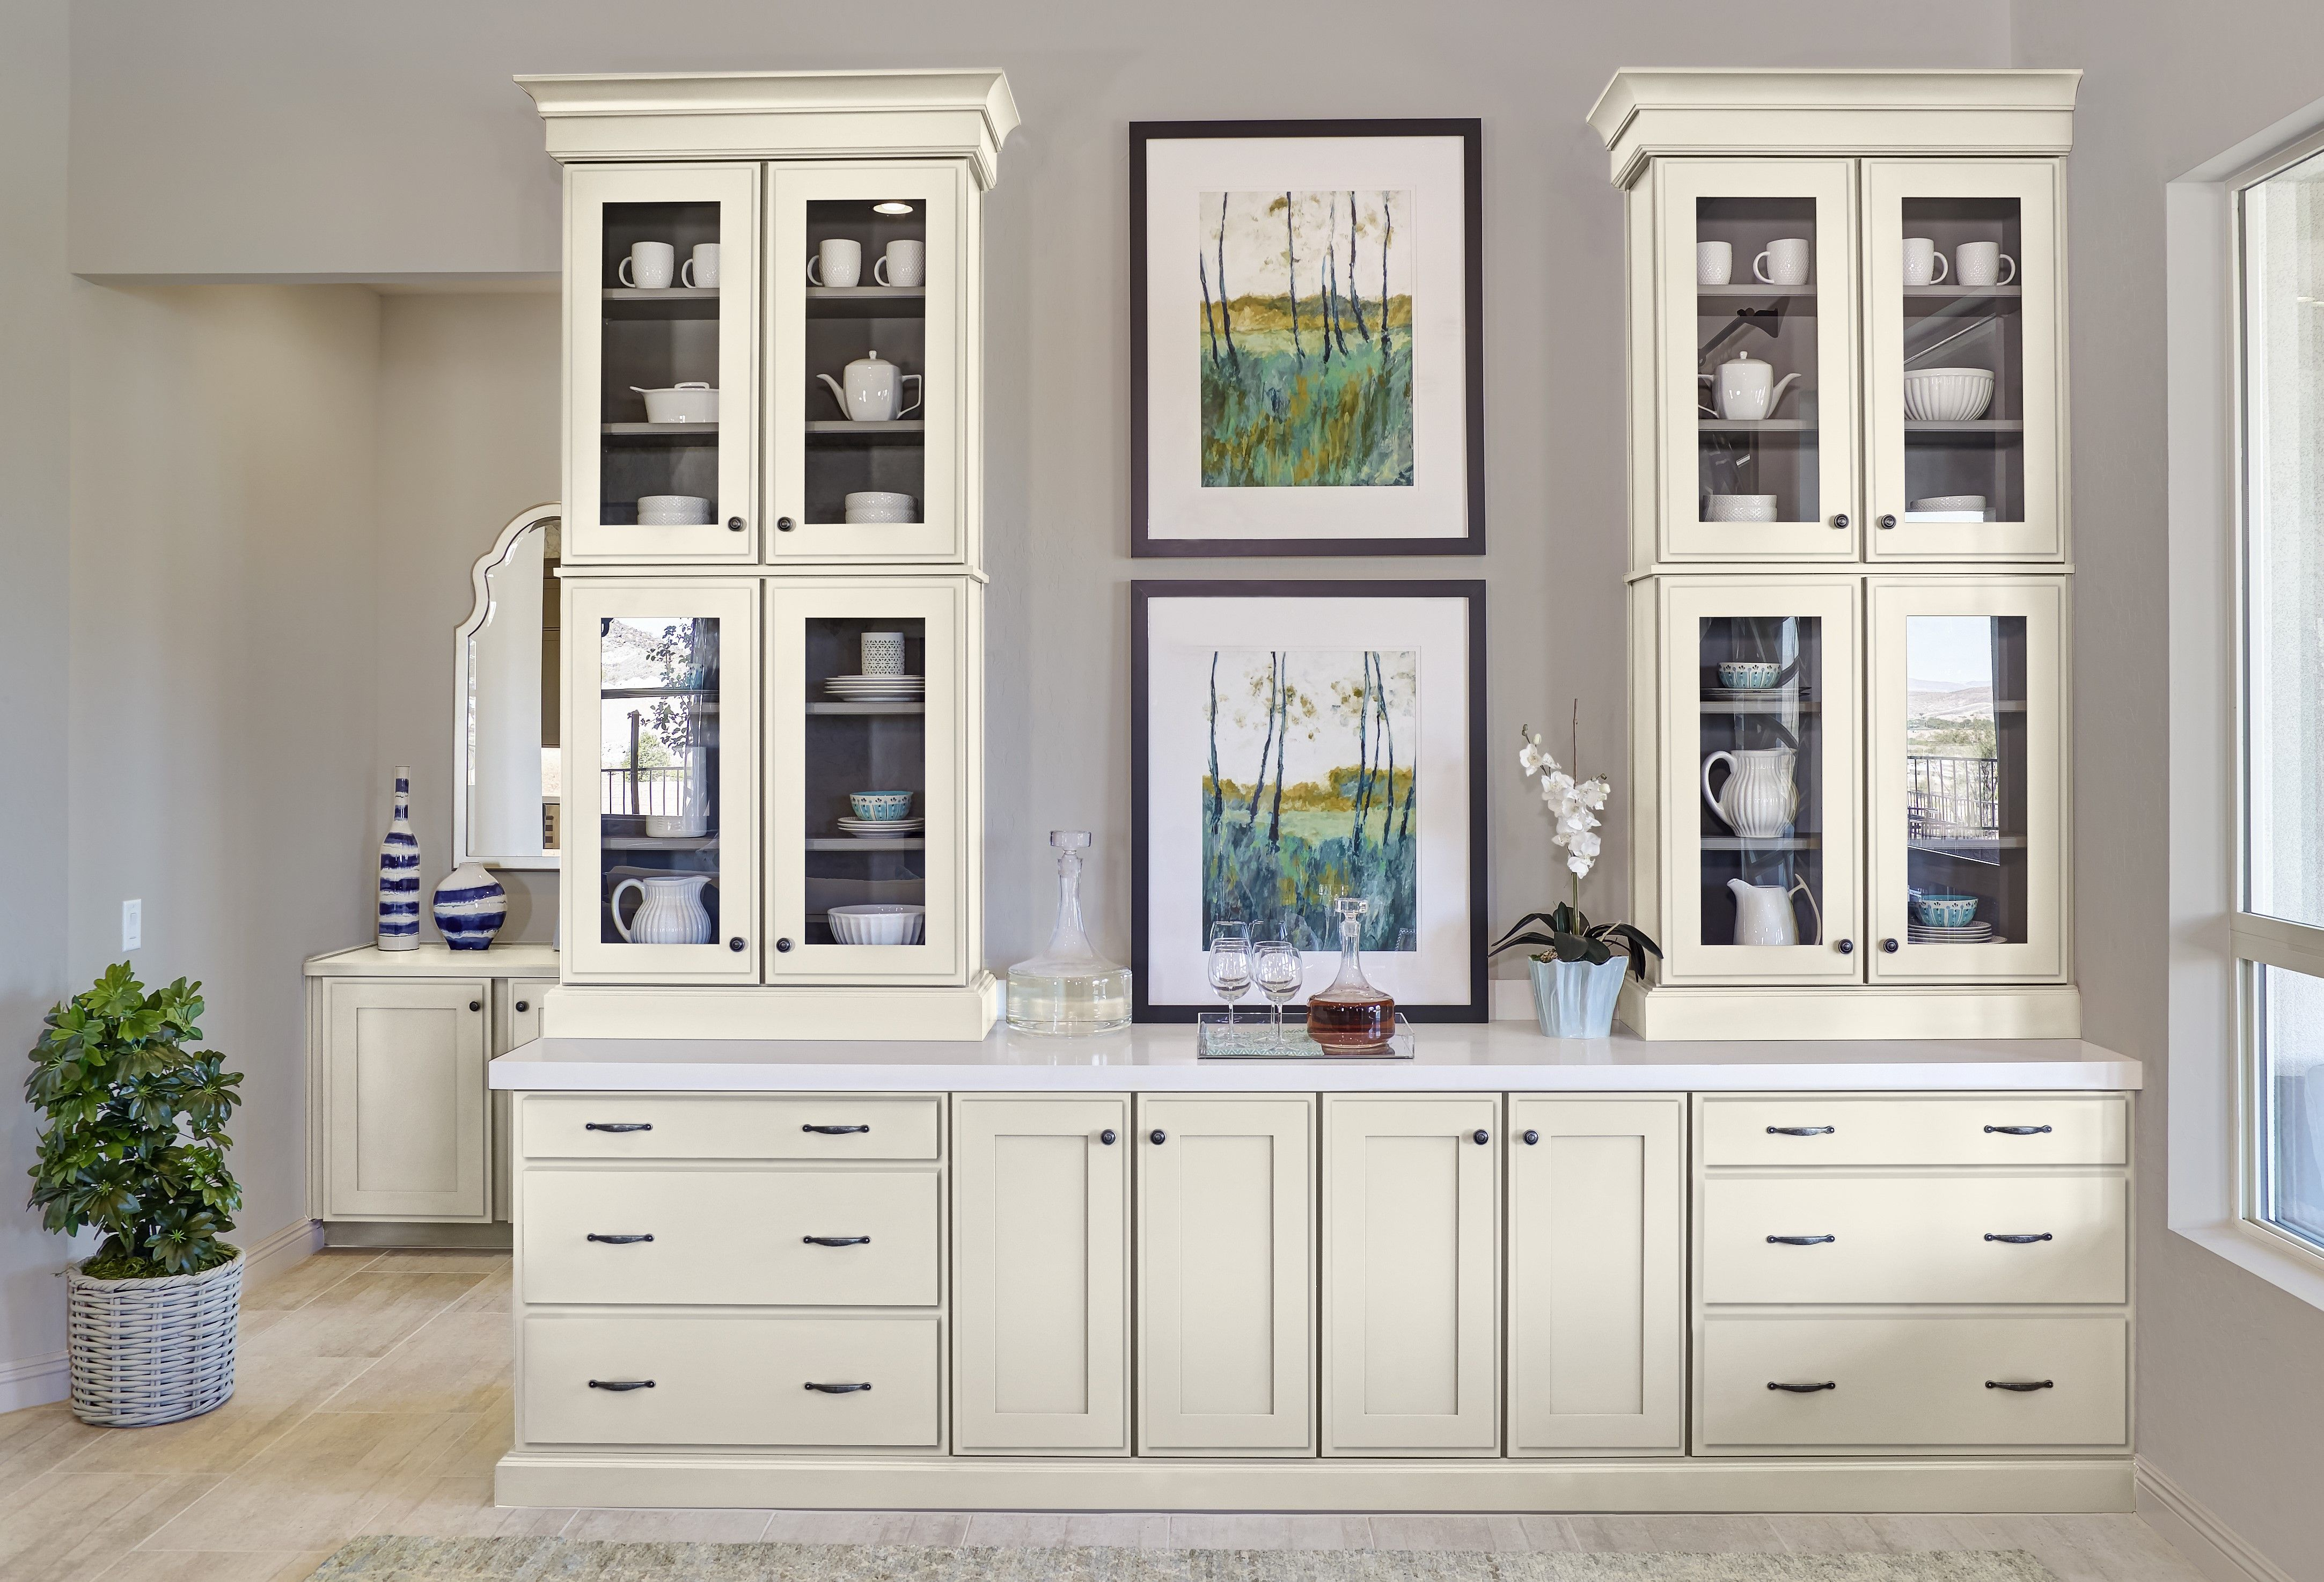 Check Out Mid Continent Cabinetry S New Door Style Stafford The Contemporary Standard Overlay Door Style F Maple Cabinets Painting Cabinets Cabinet Styles